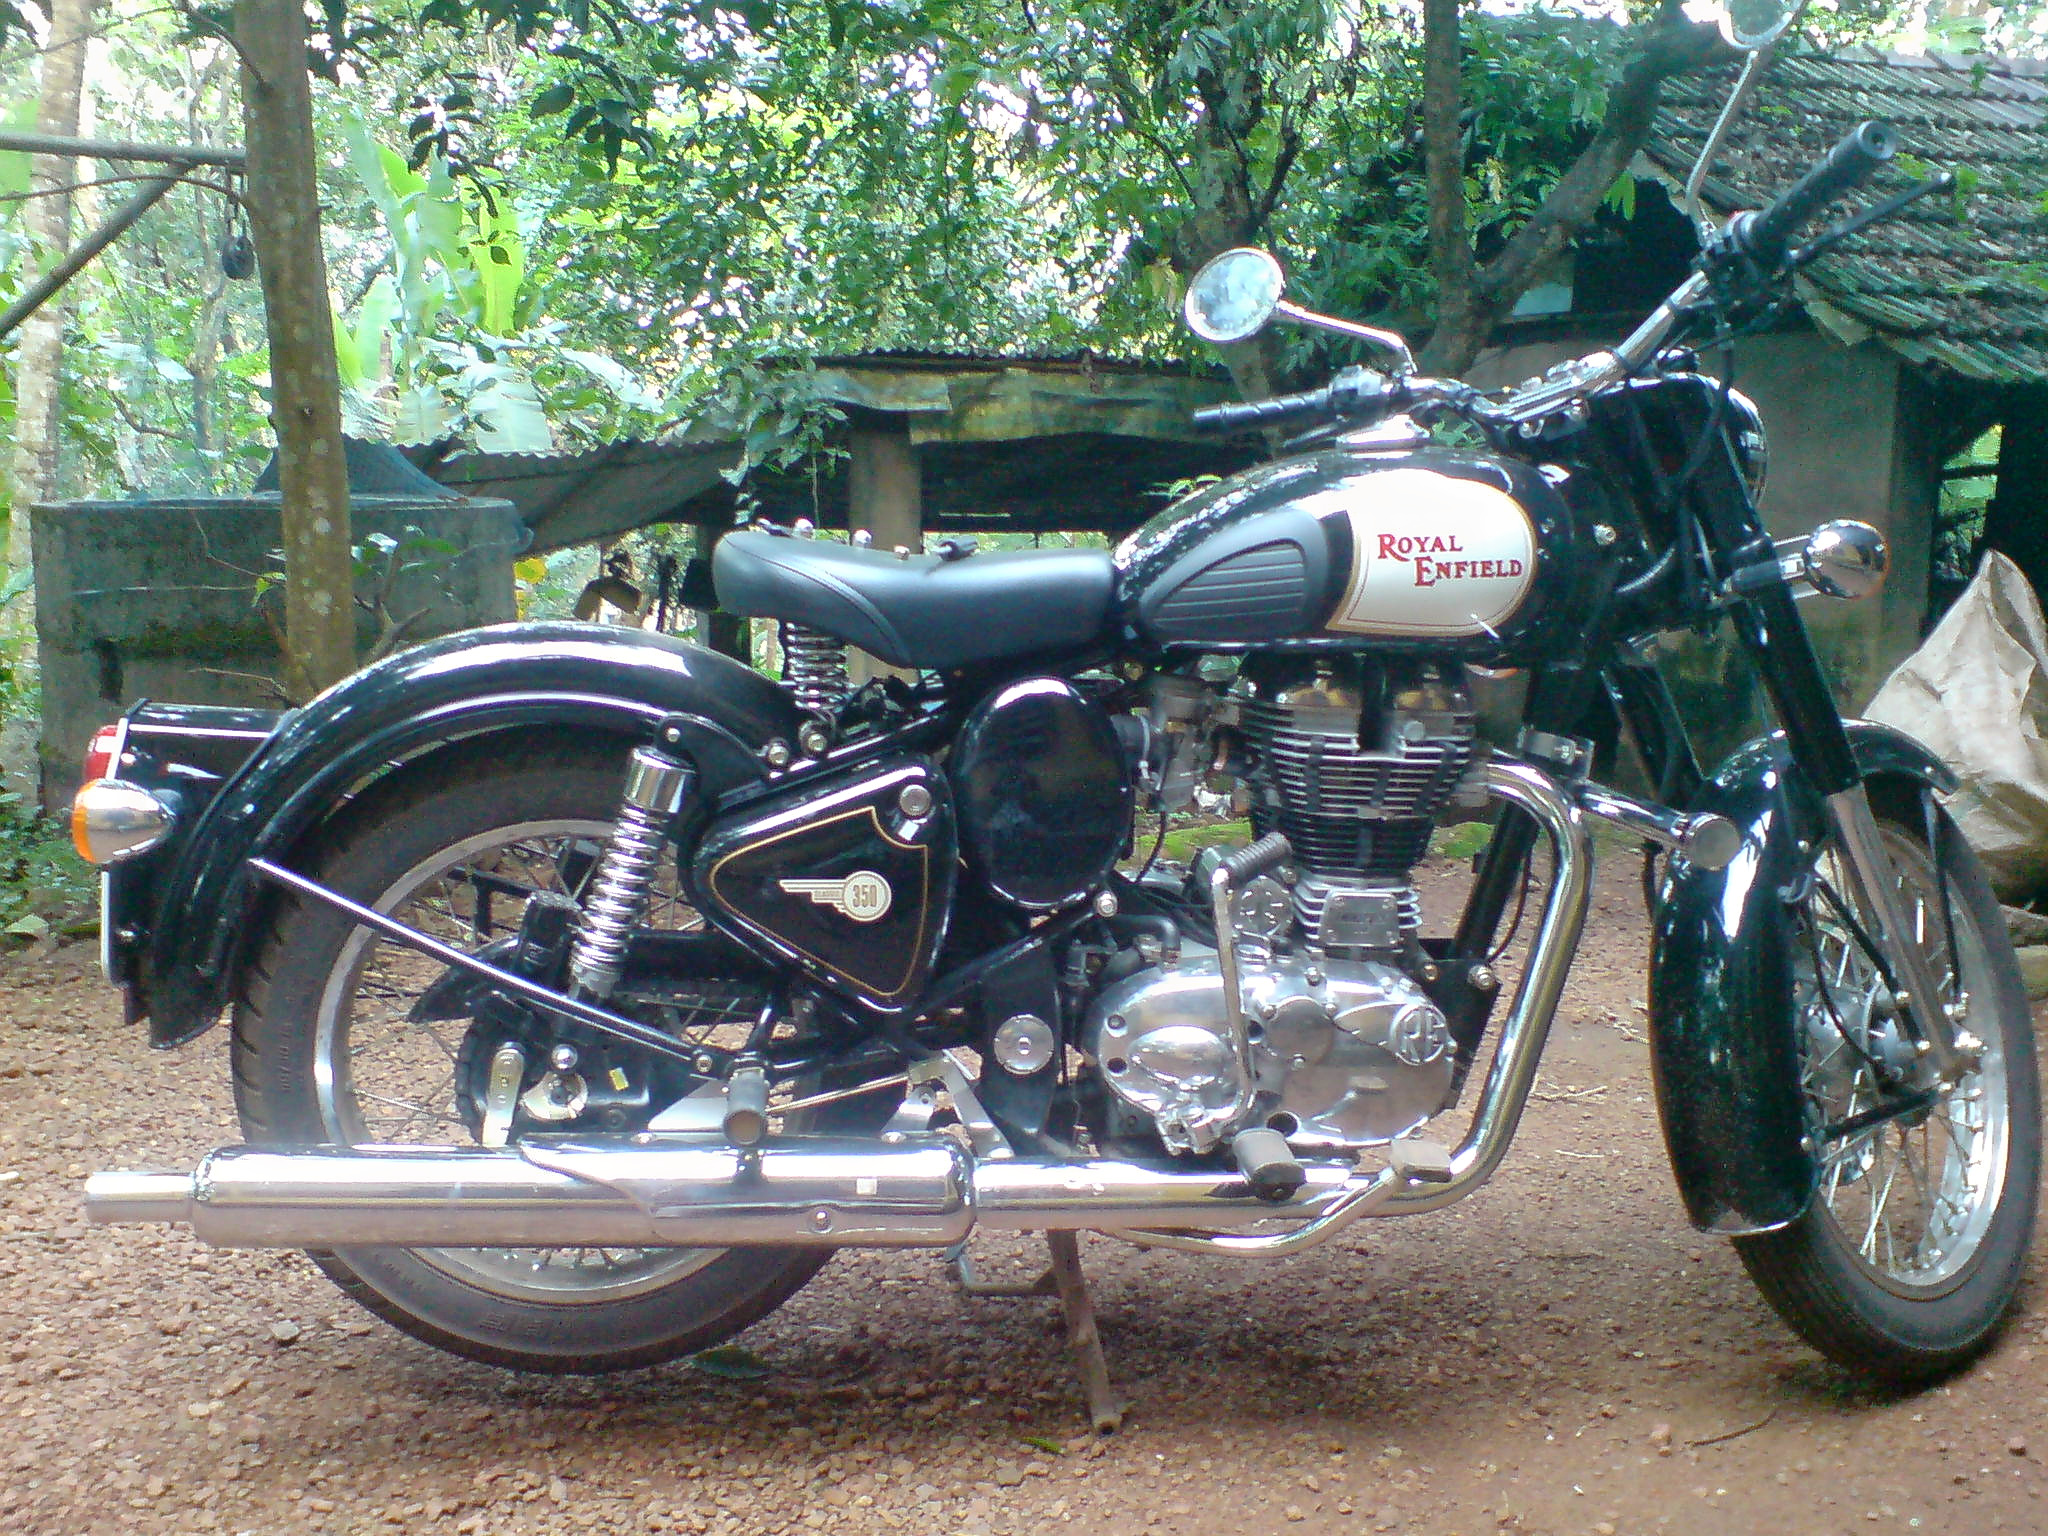 1559809939_royal_enfield_classic_350_2010_model.jpg